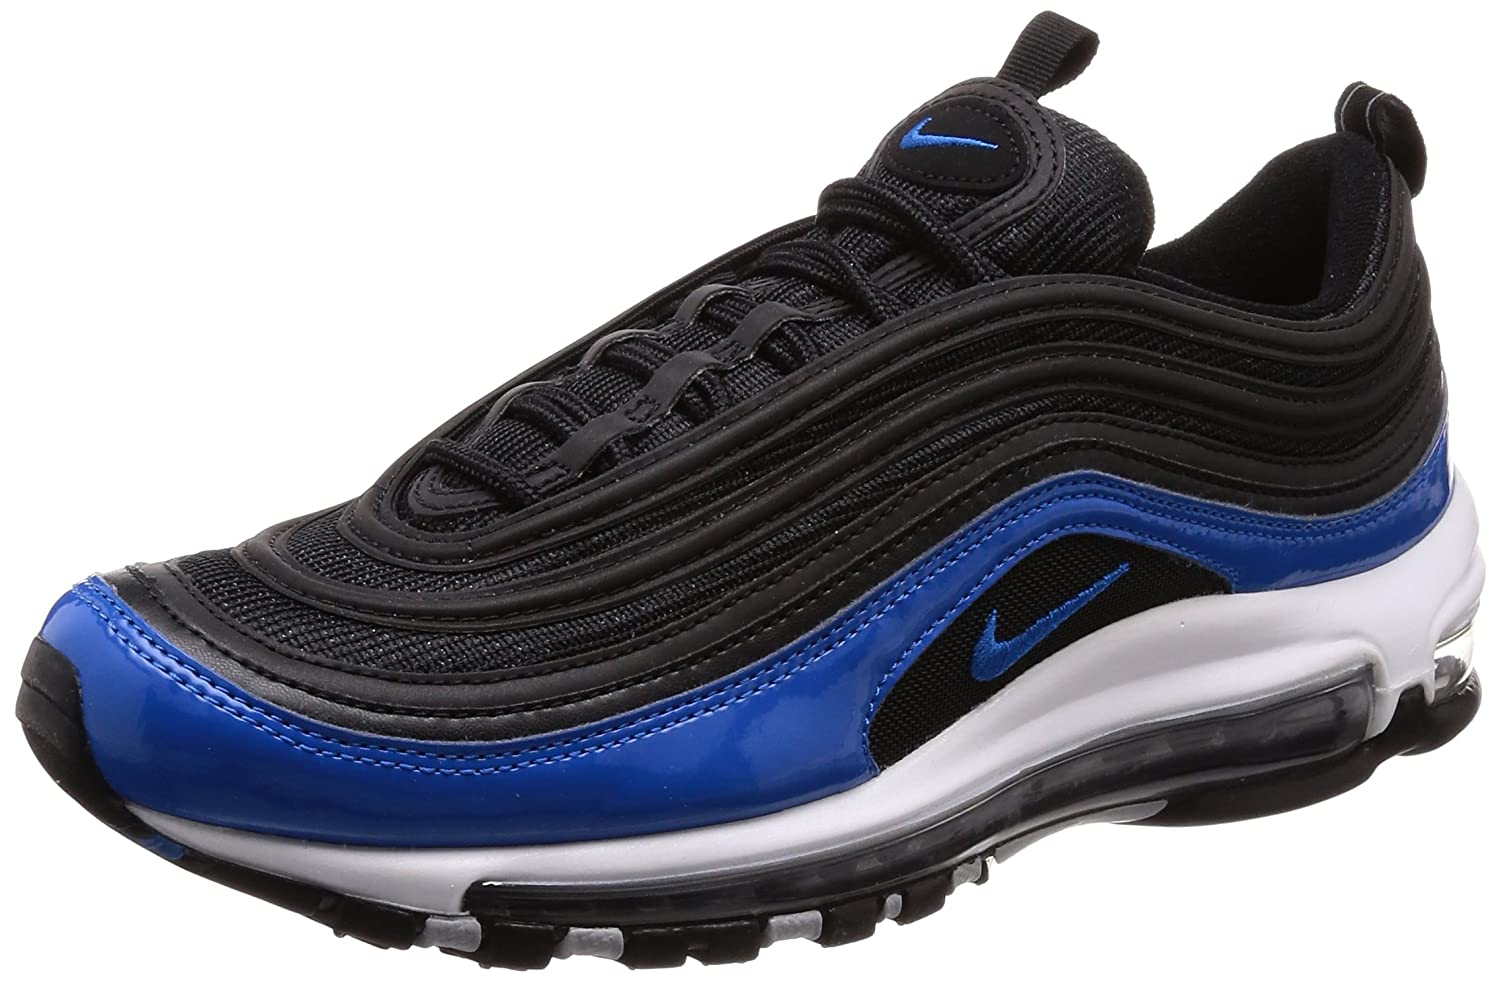 buy online 36a18 0b665 Nike Air Max 97 Black/Blue Nebula-Wolf Grey